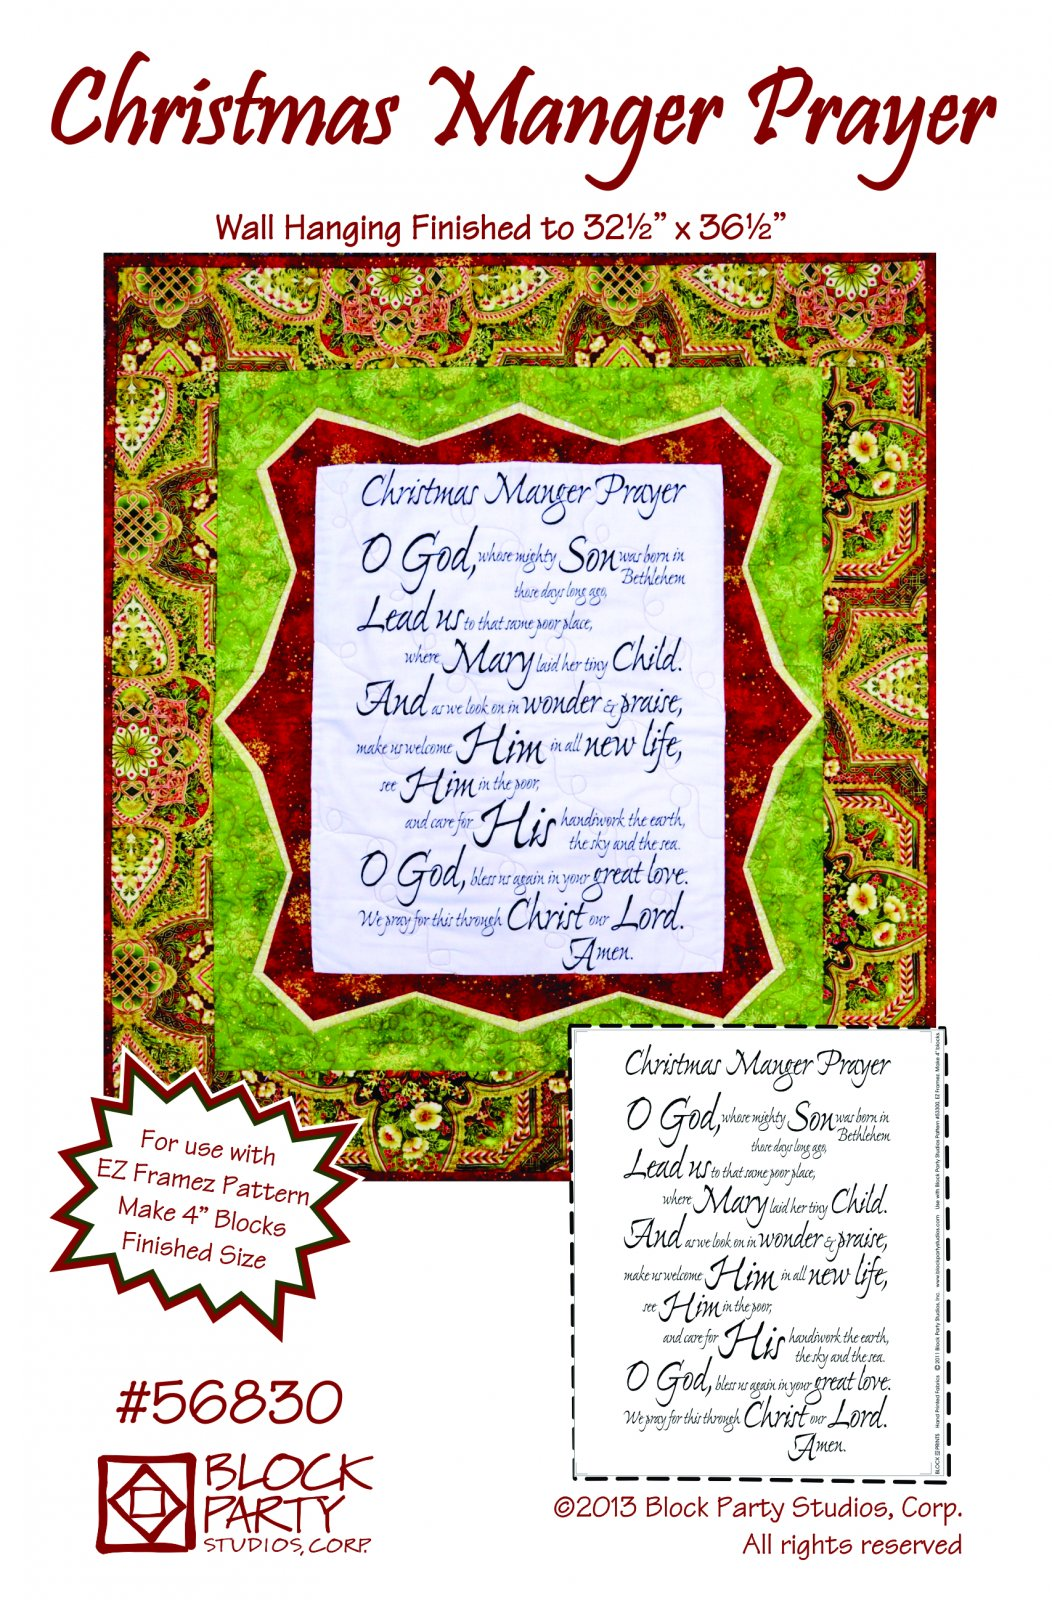 Christmas Manger Prayer Pattern & Panel